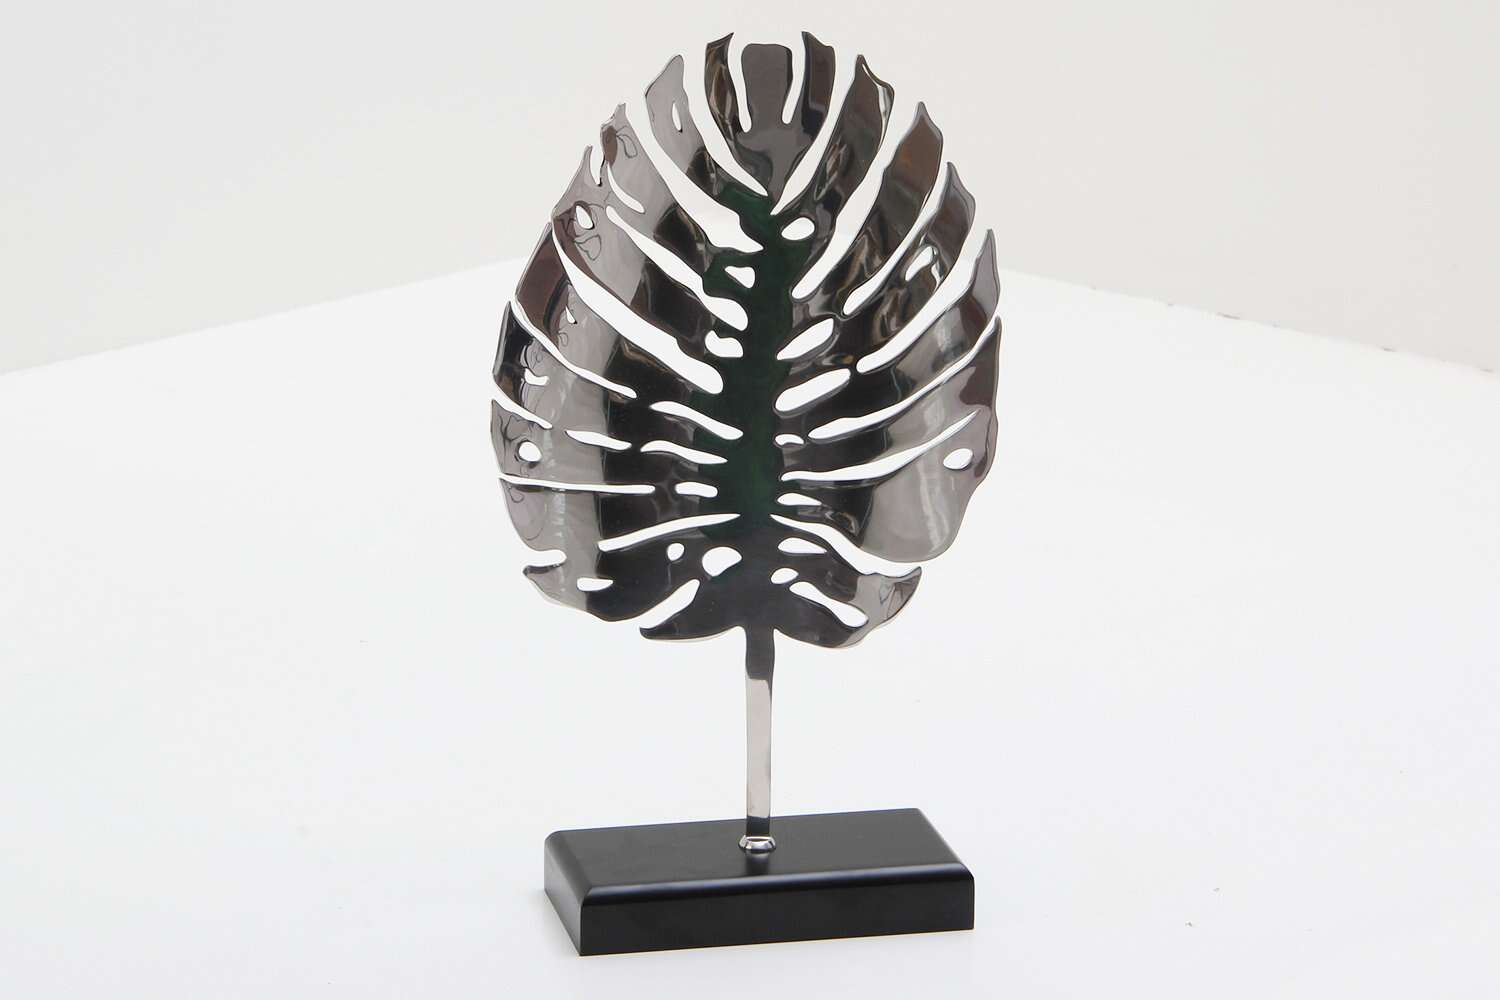 Stainless Steel Leaf Sculpture Unique To Forwood Design